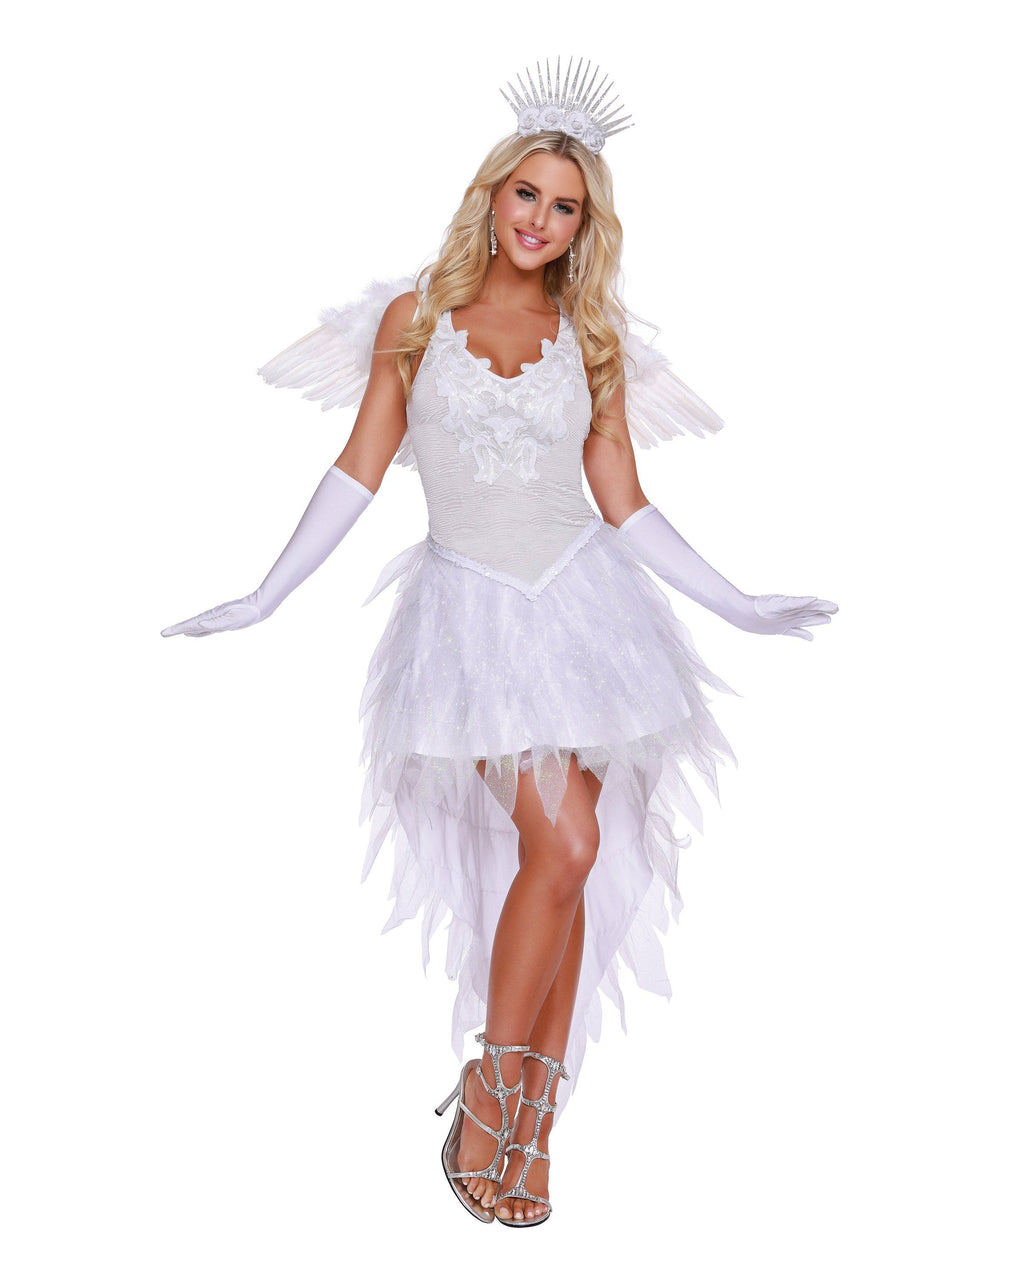 Angel Beauty Women's Costume Dreamgirl Costume